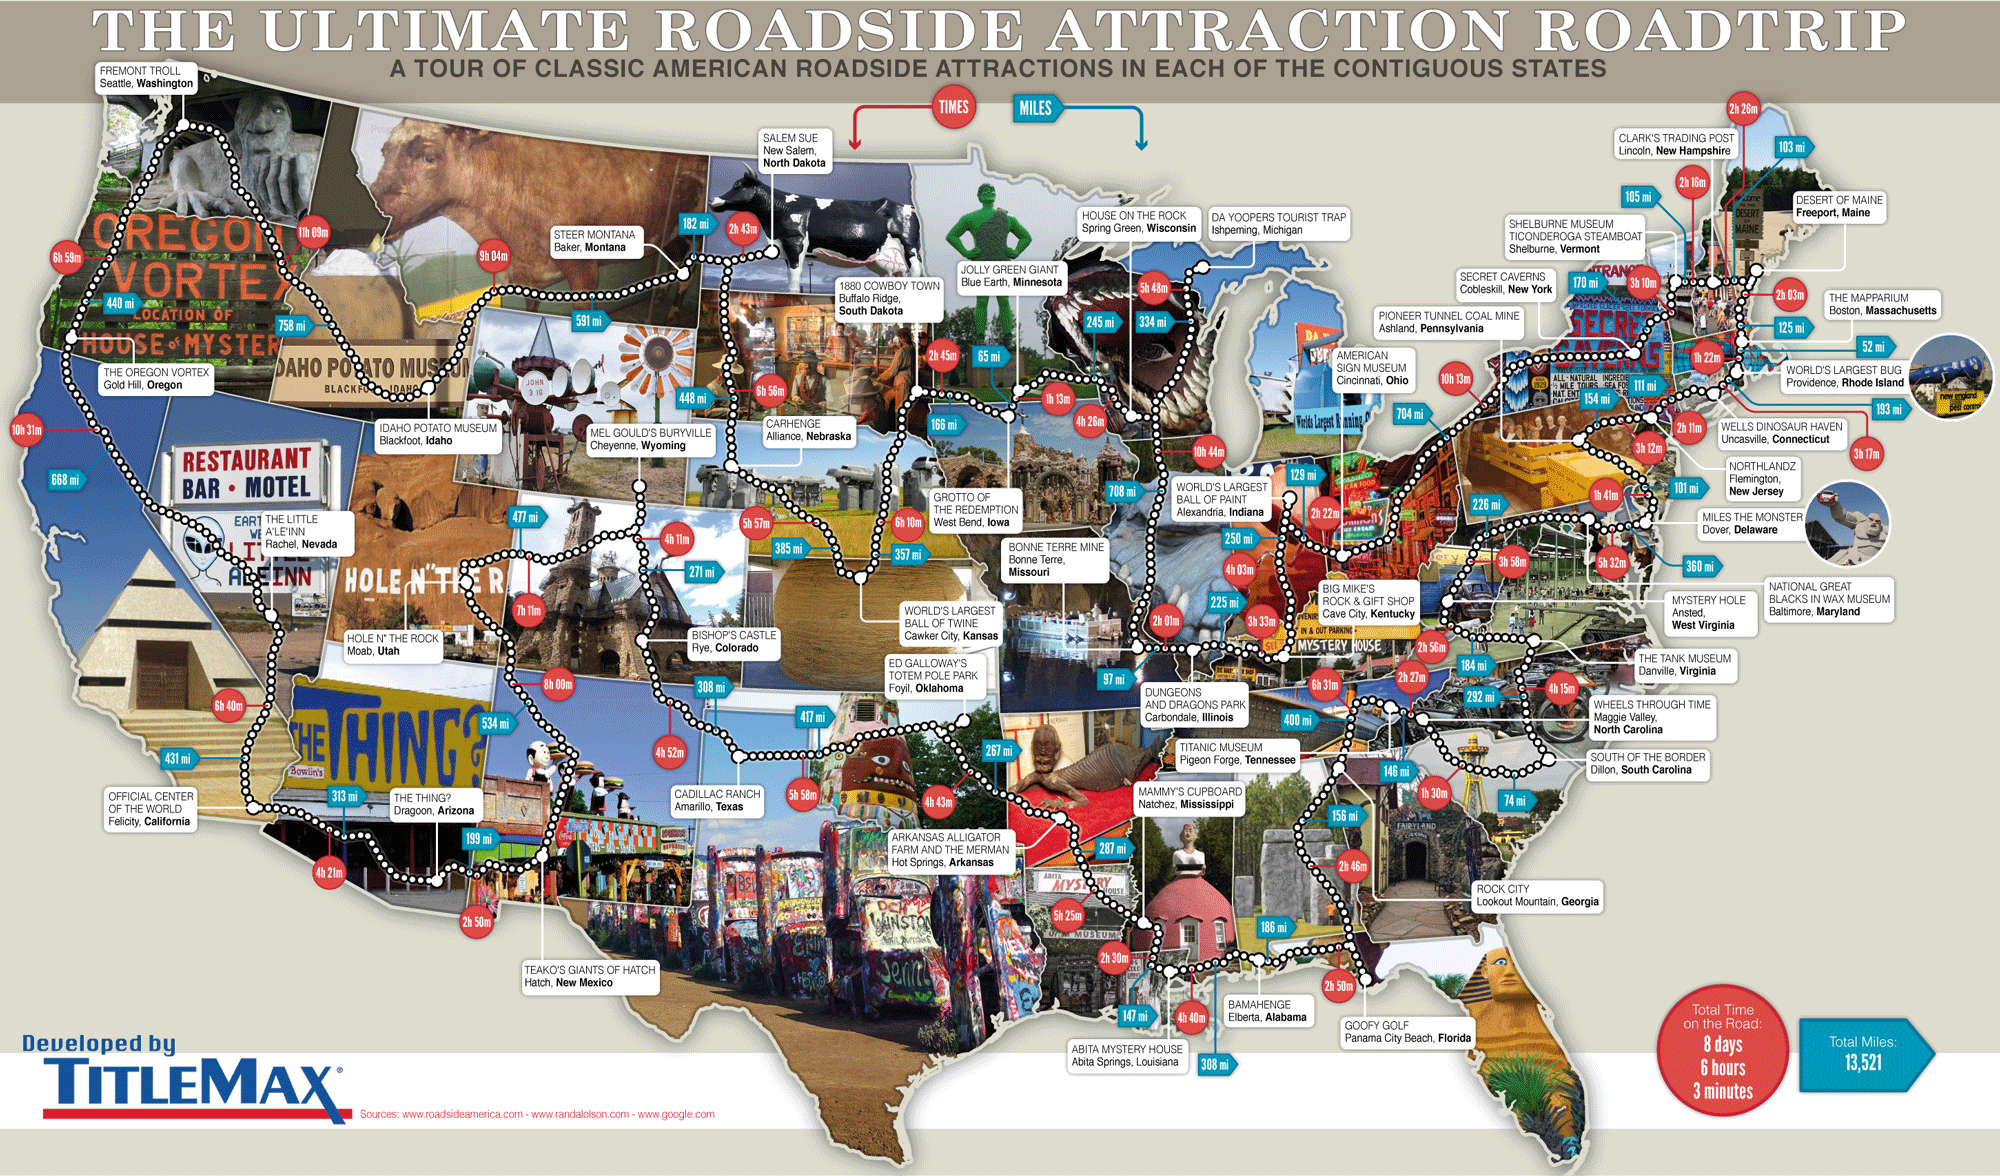 79 Weird Roadside Attractions Road Trip[INFOGRAPHIC] TitleMax